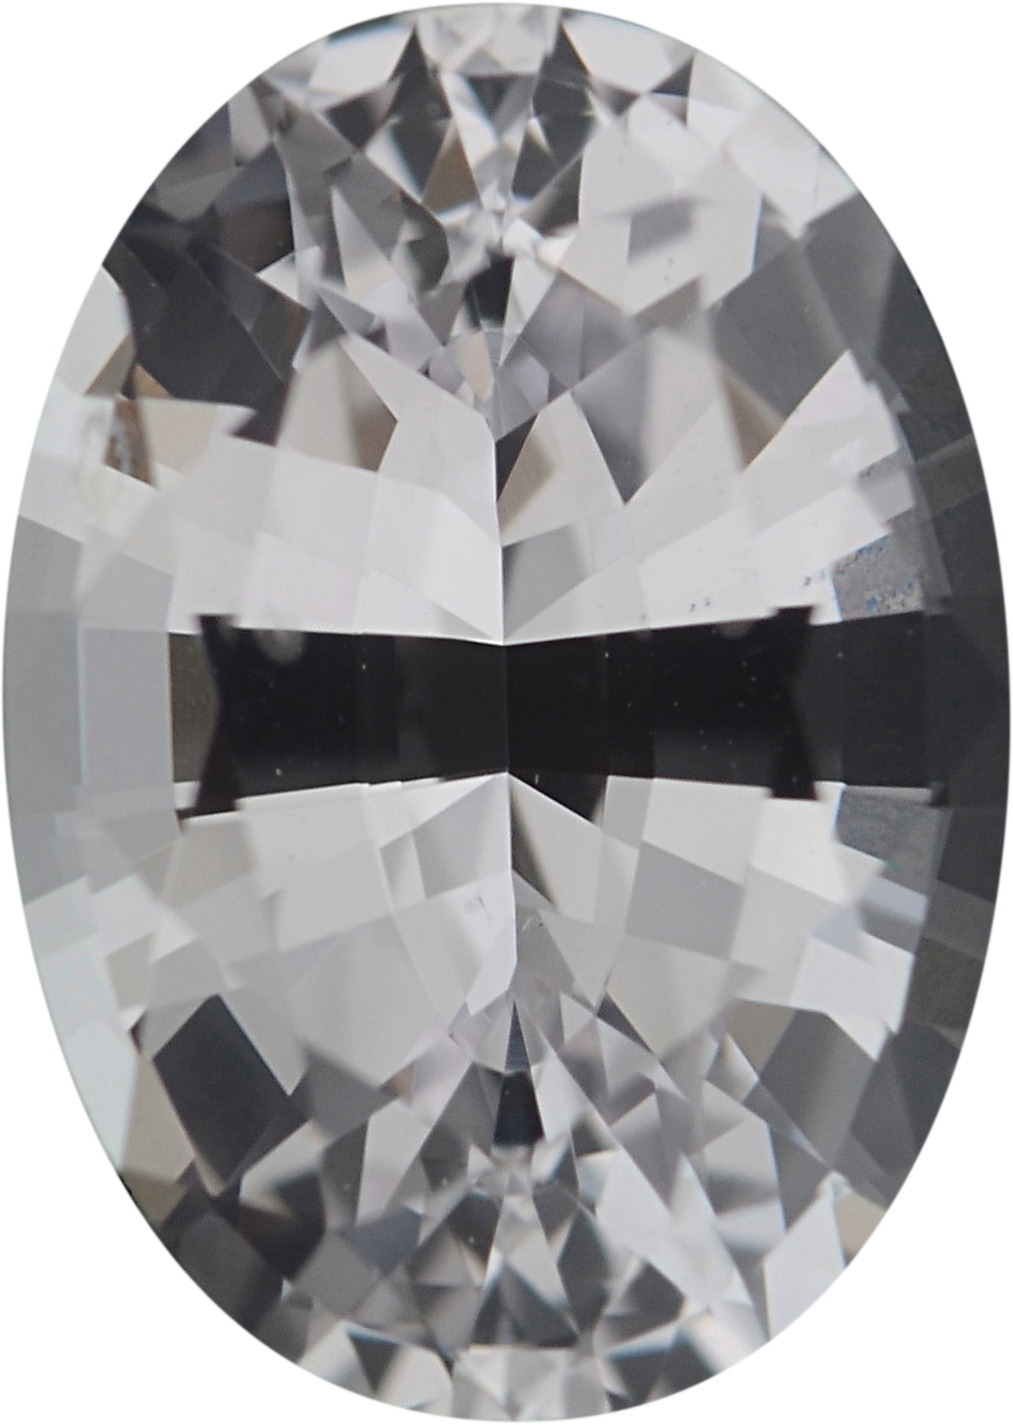 6.89 x 4.9 mm, Oval Cut Genuine White Sapphire Gem, 0.89 carats